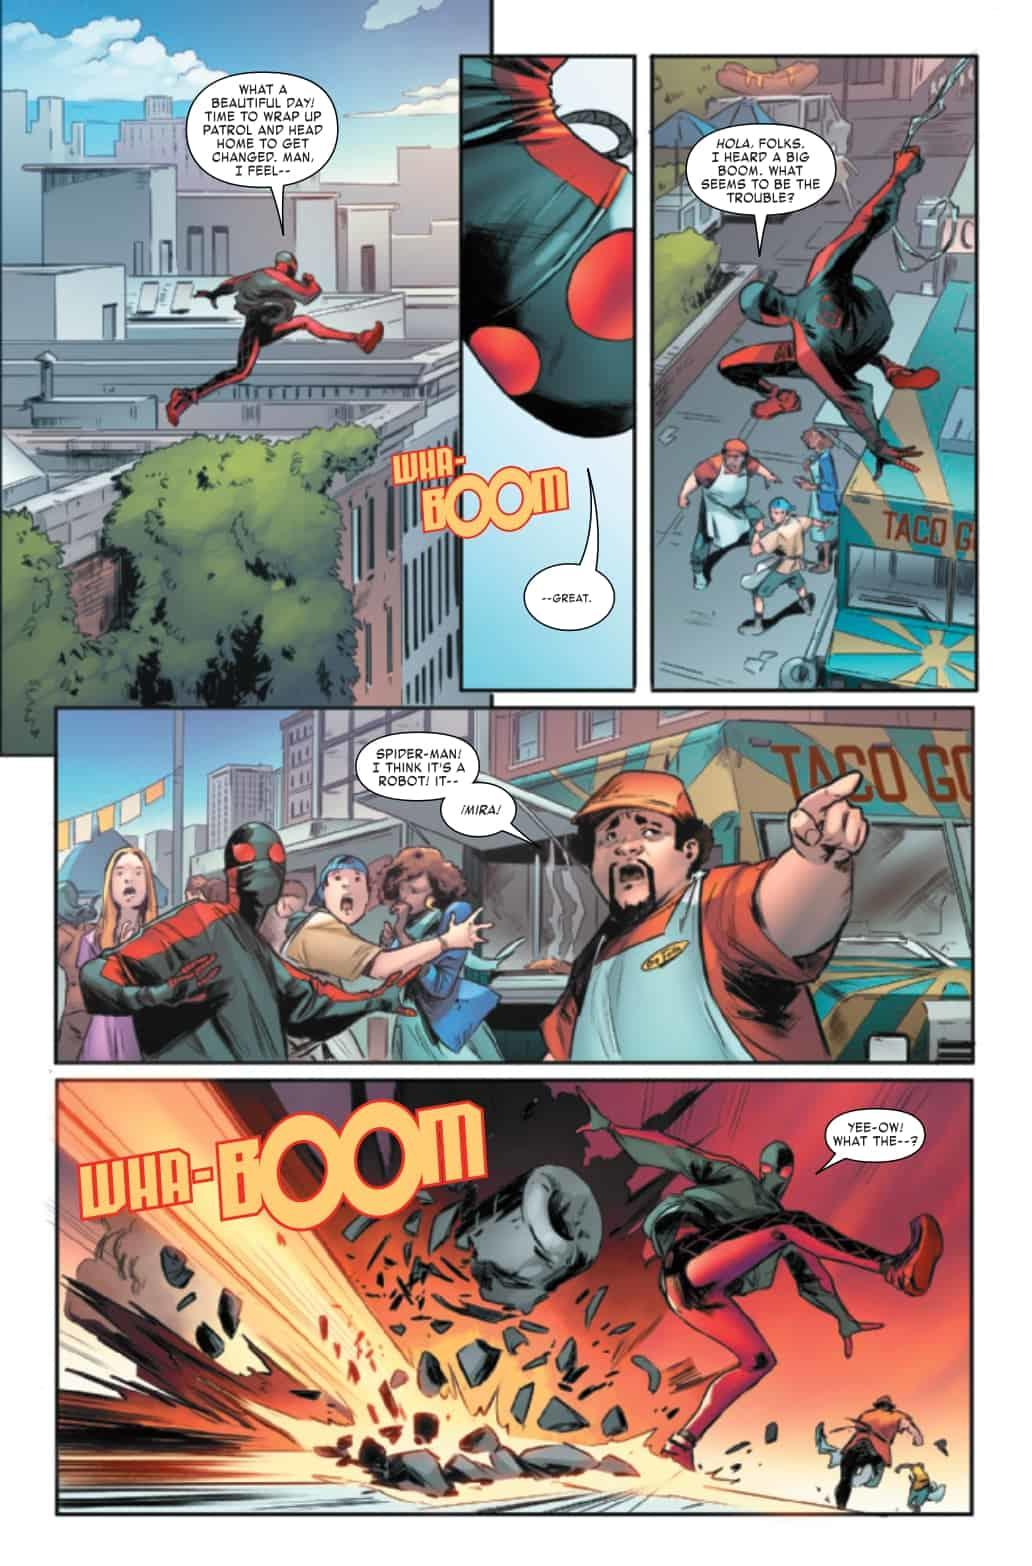 mmsm2018030-preview-page-0004.jpg